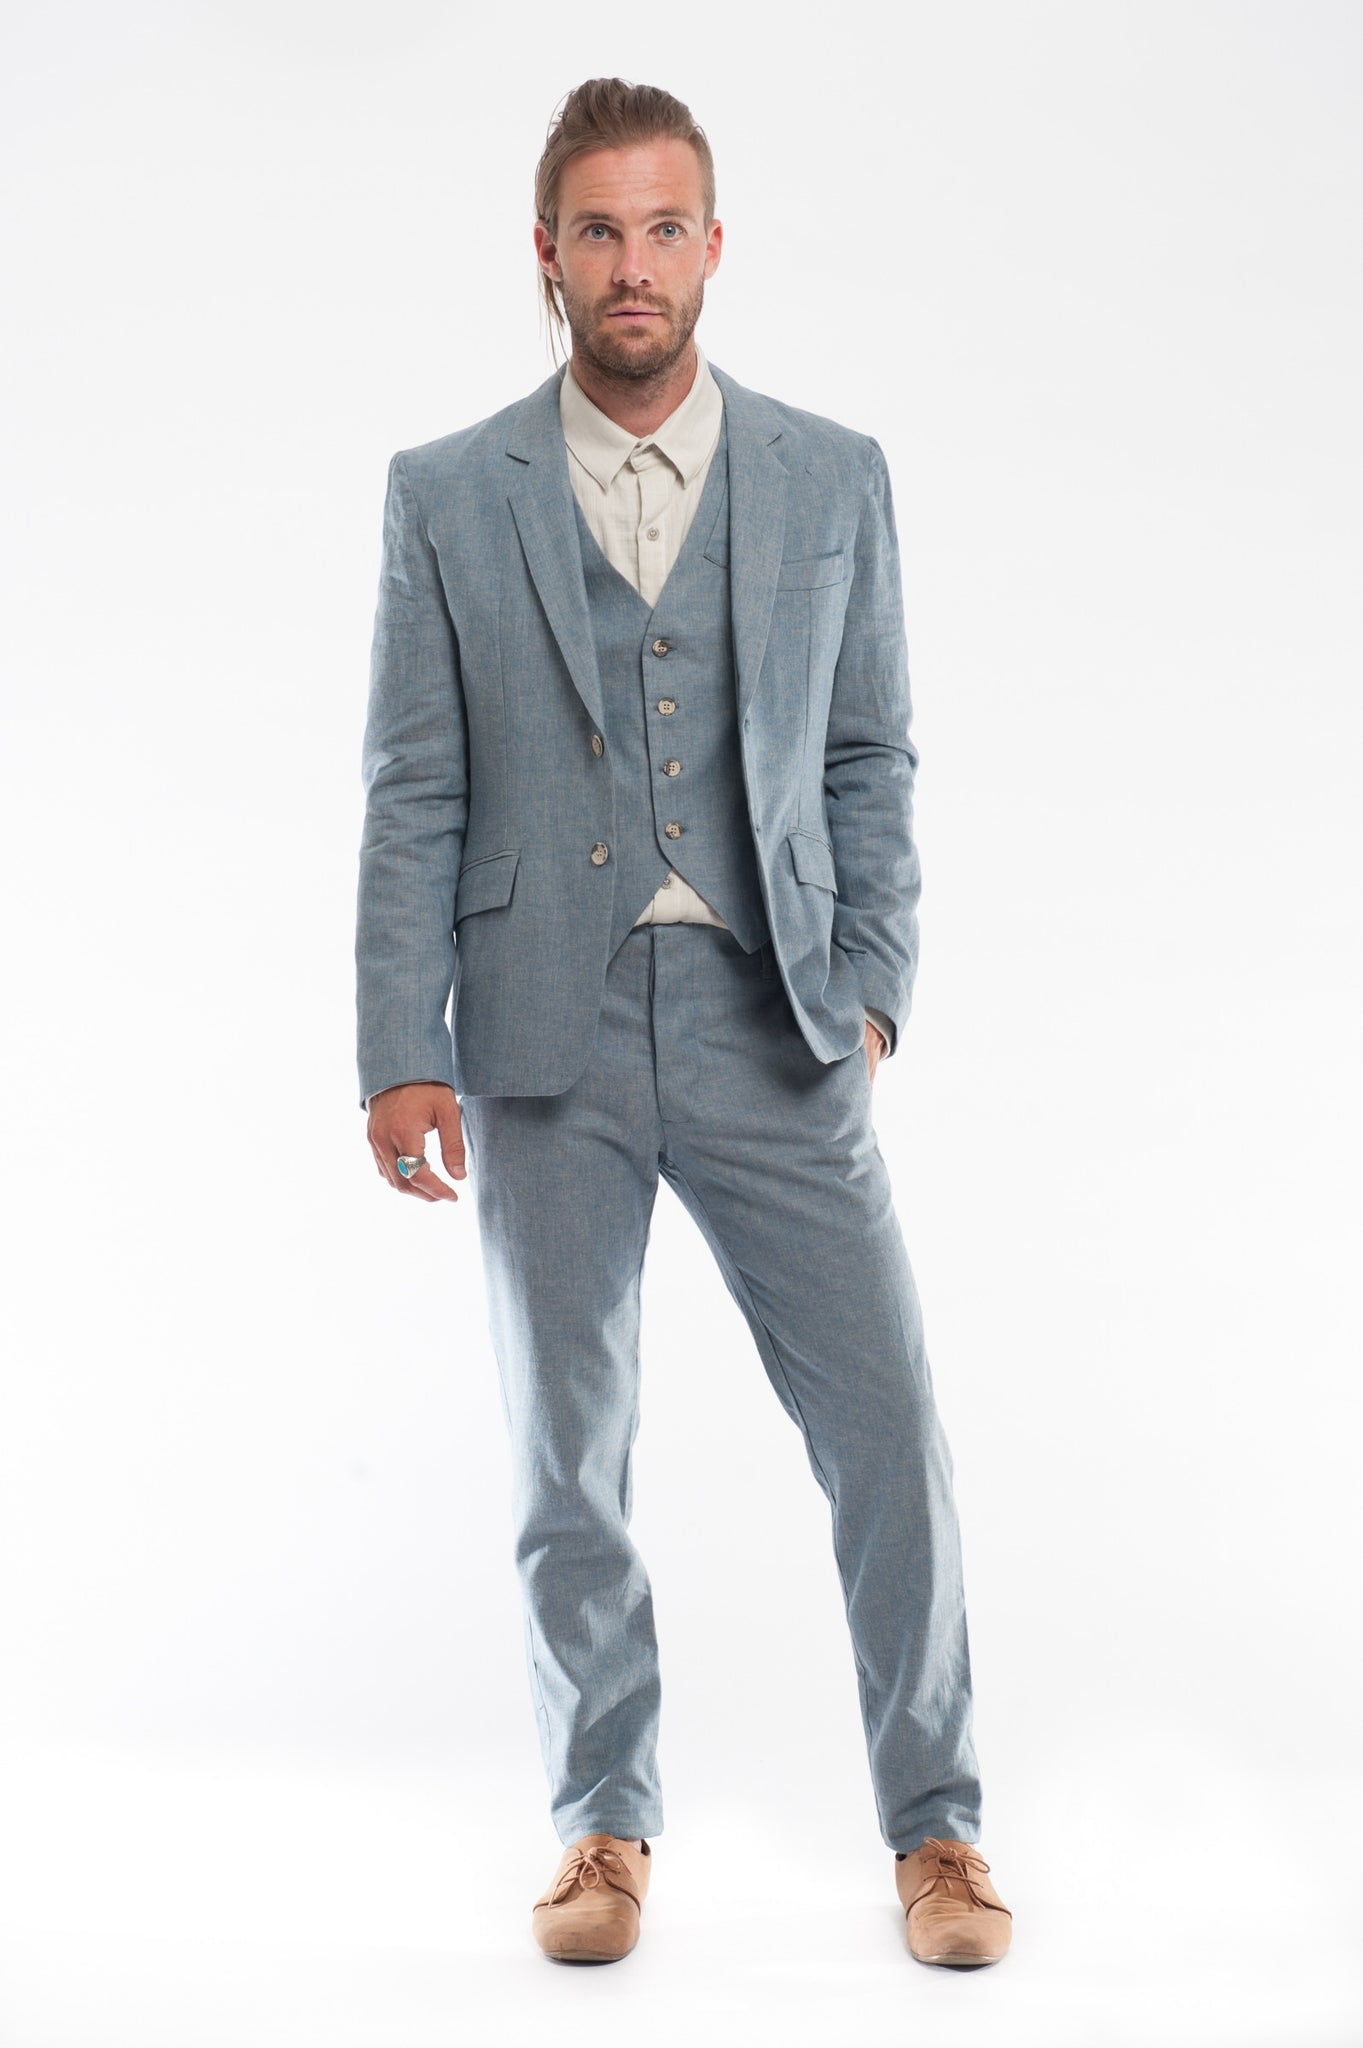 Blue Linen Three Piece Suit | Summer Wedding Suit